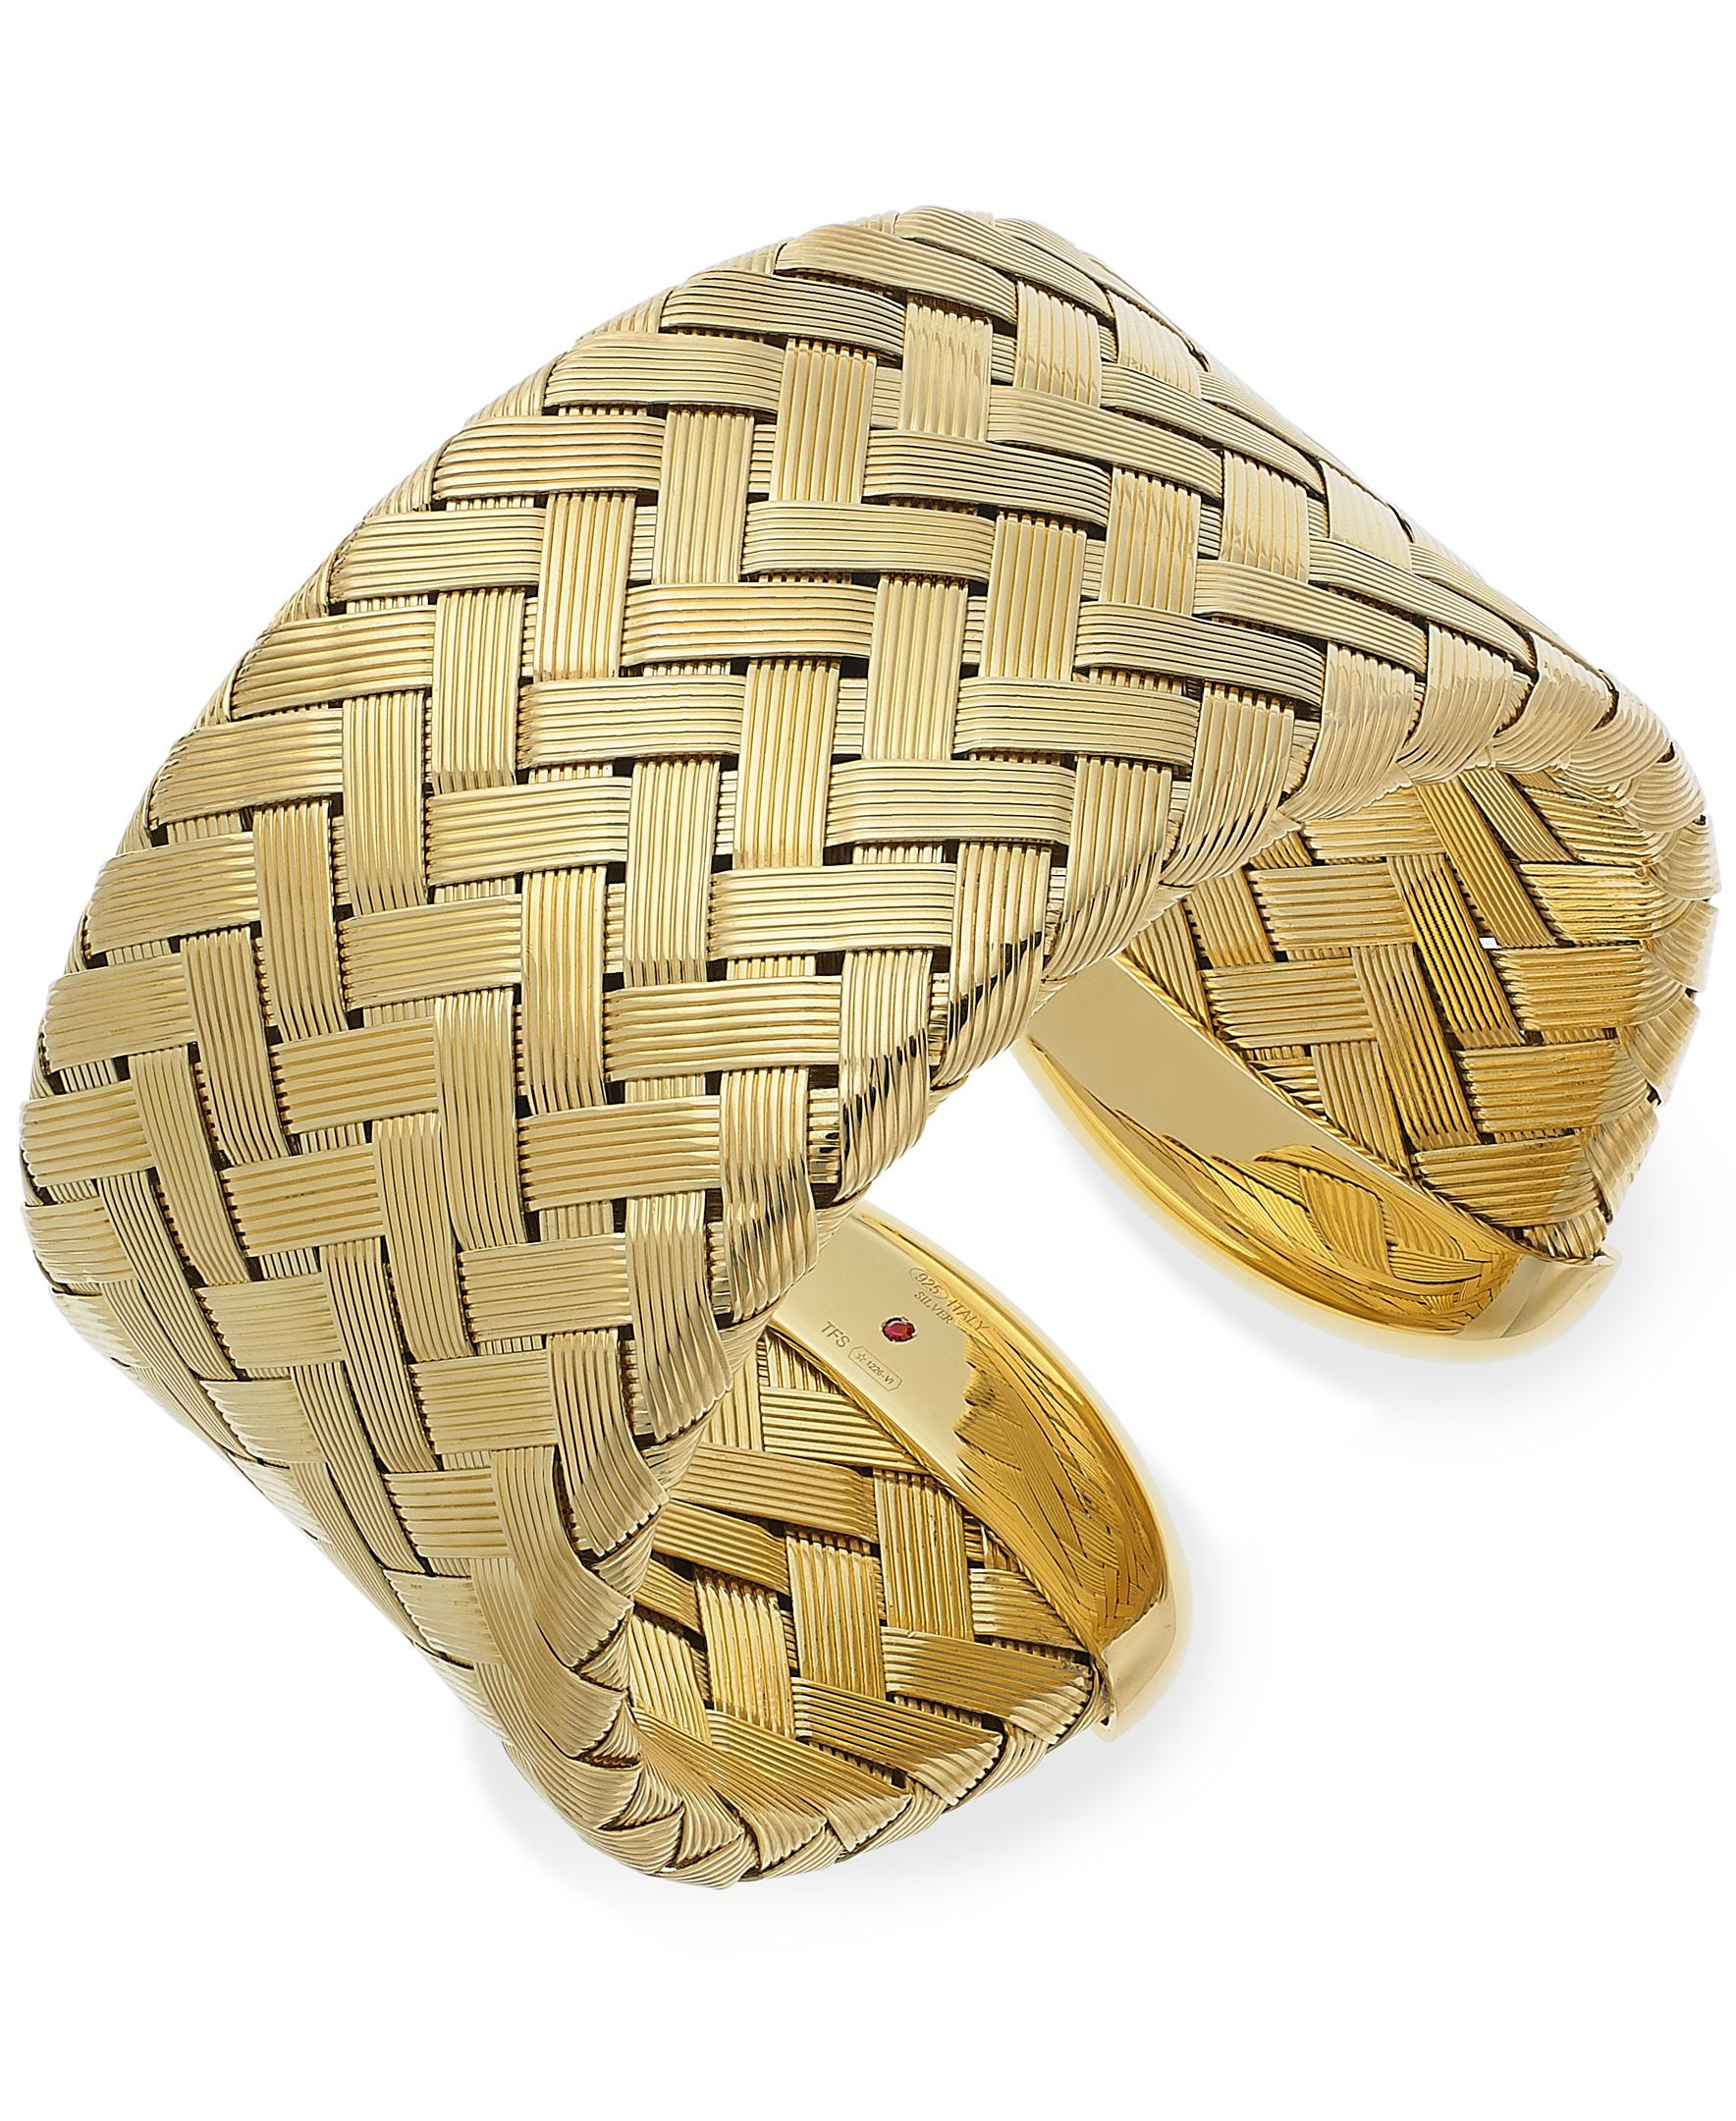 The Fifth Season by Roberto Coin 18k Gold over Sterling Silver Bracelet, Extra Large Woven Cuff